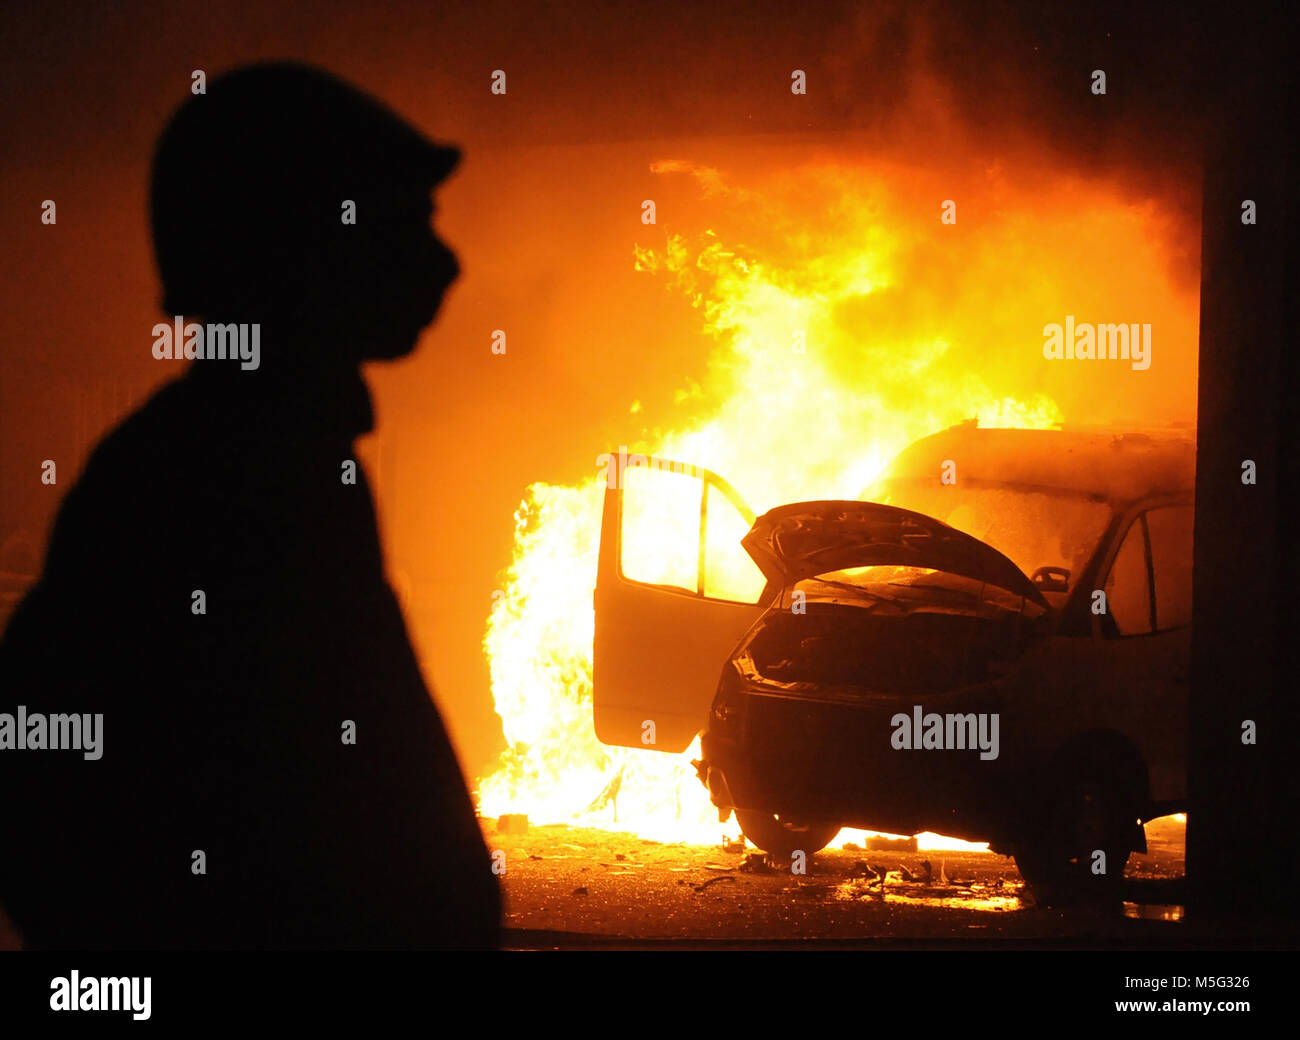 burning car, unrest, anti-government, crime - Stock Image